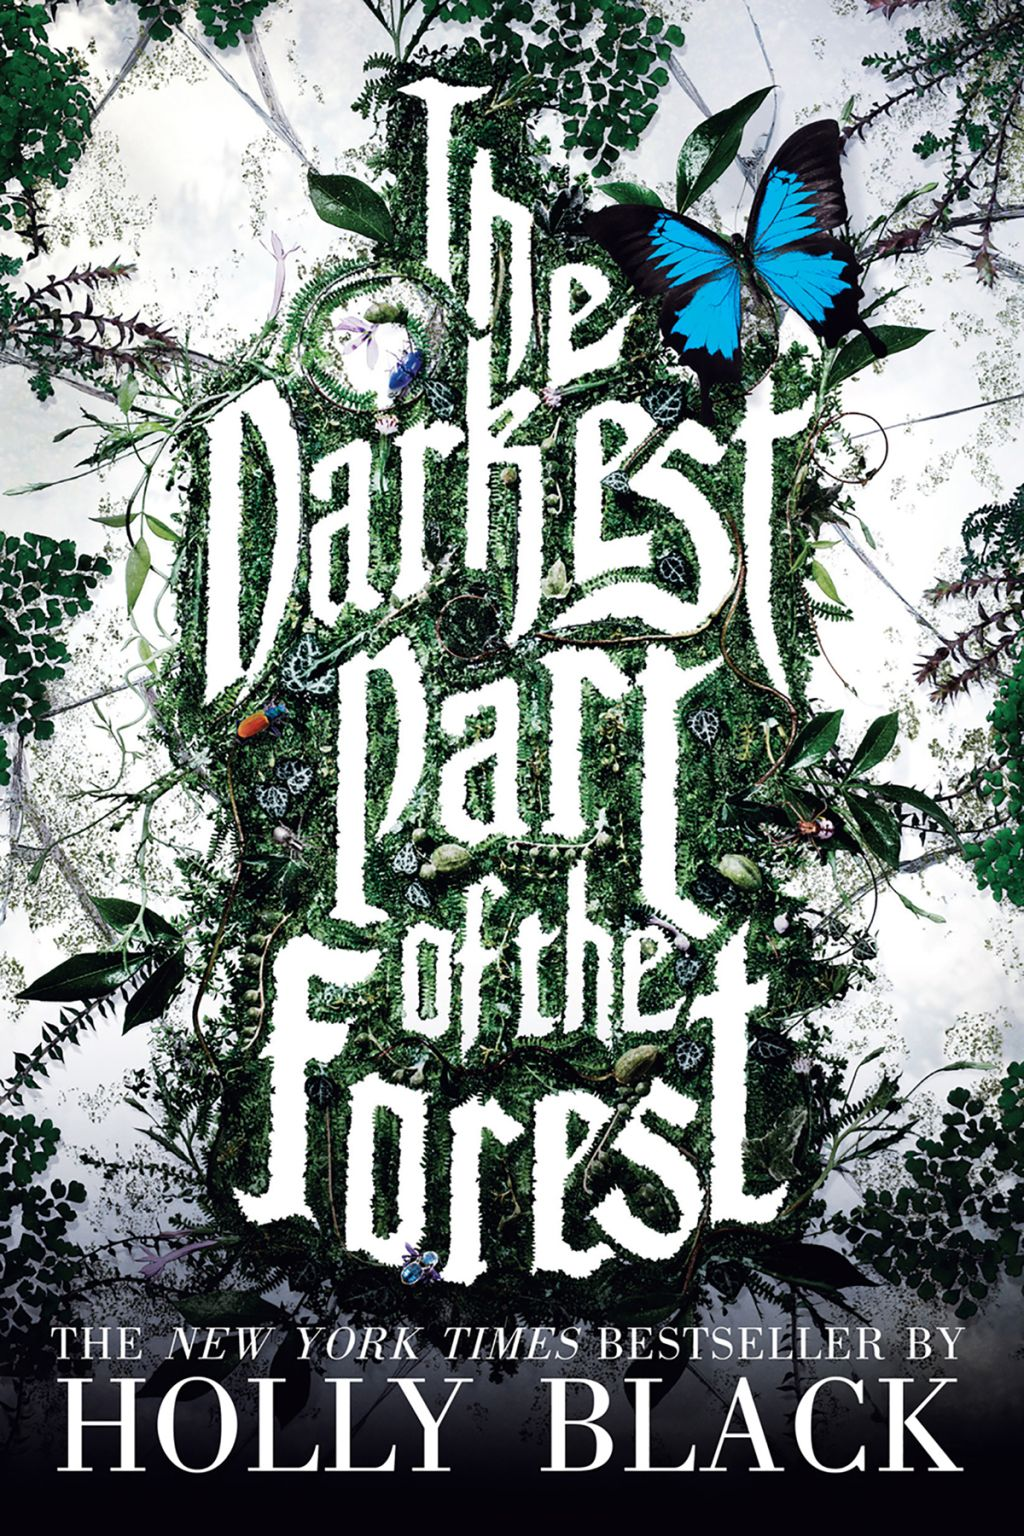 The Darkest Part of the Forest (eBook) is part of Books young adult - By Holly Black PRINT ISBN 9780316213059 ETEXT ISBN 9780316213059 Edition 0